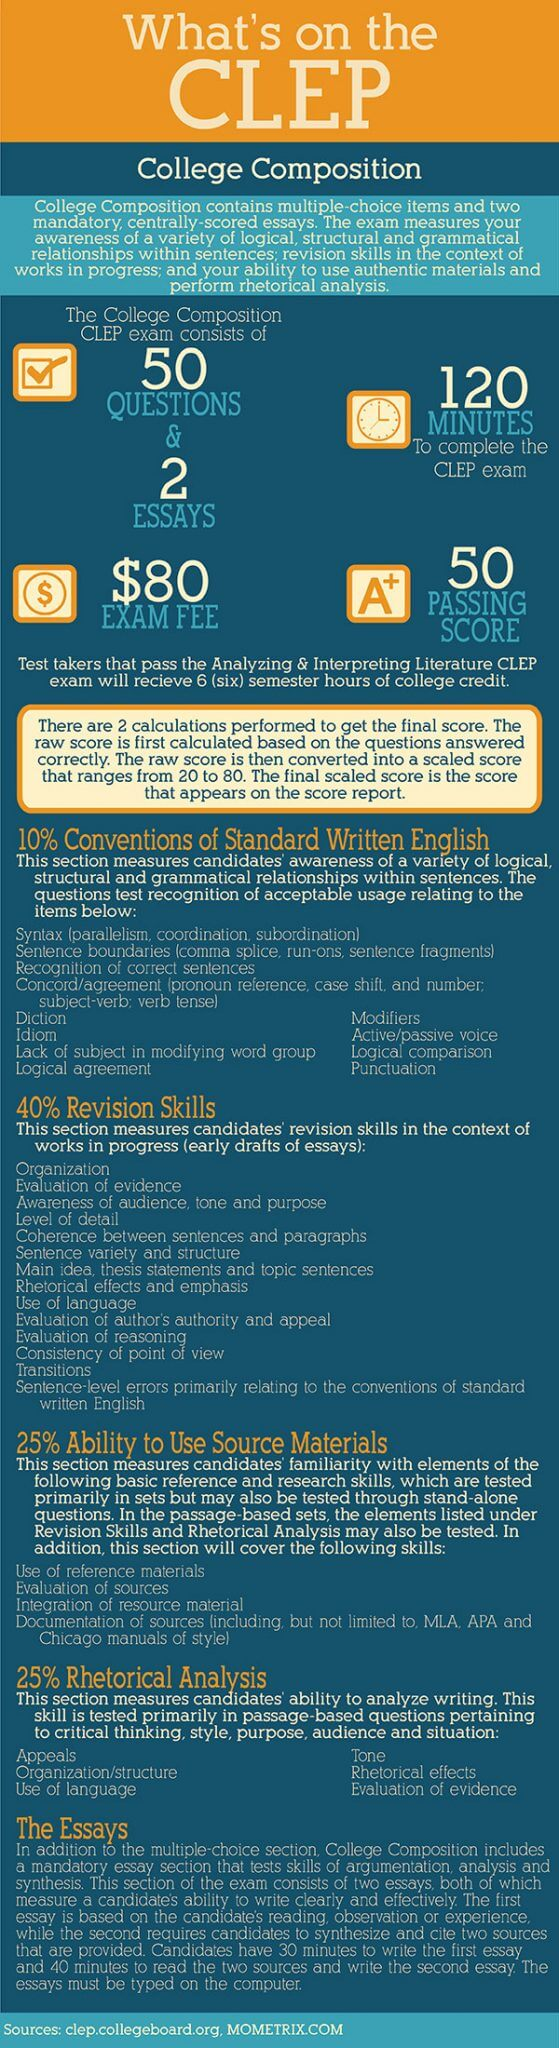 Clep College Composition Exam Practice Questions The Yellow Wallpaper Character Analysis Essay Essay On Health Clep College Composition Exam Practice Questions Essay In English For Students also English Essay Question Examples